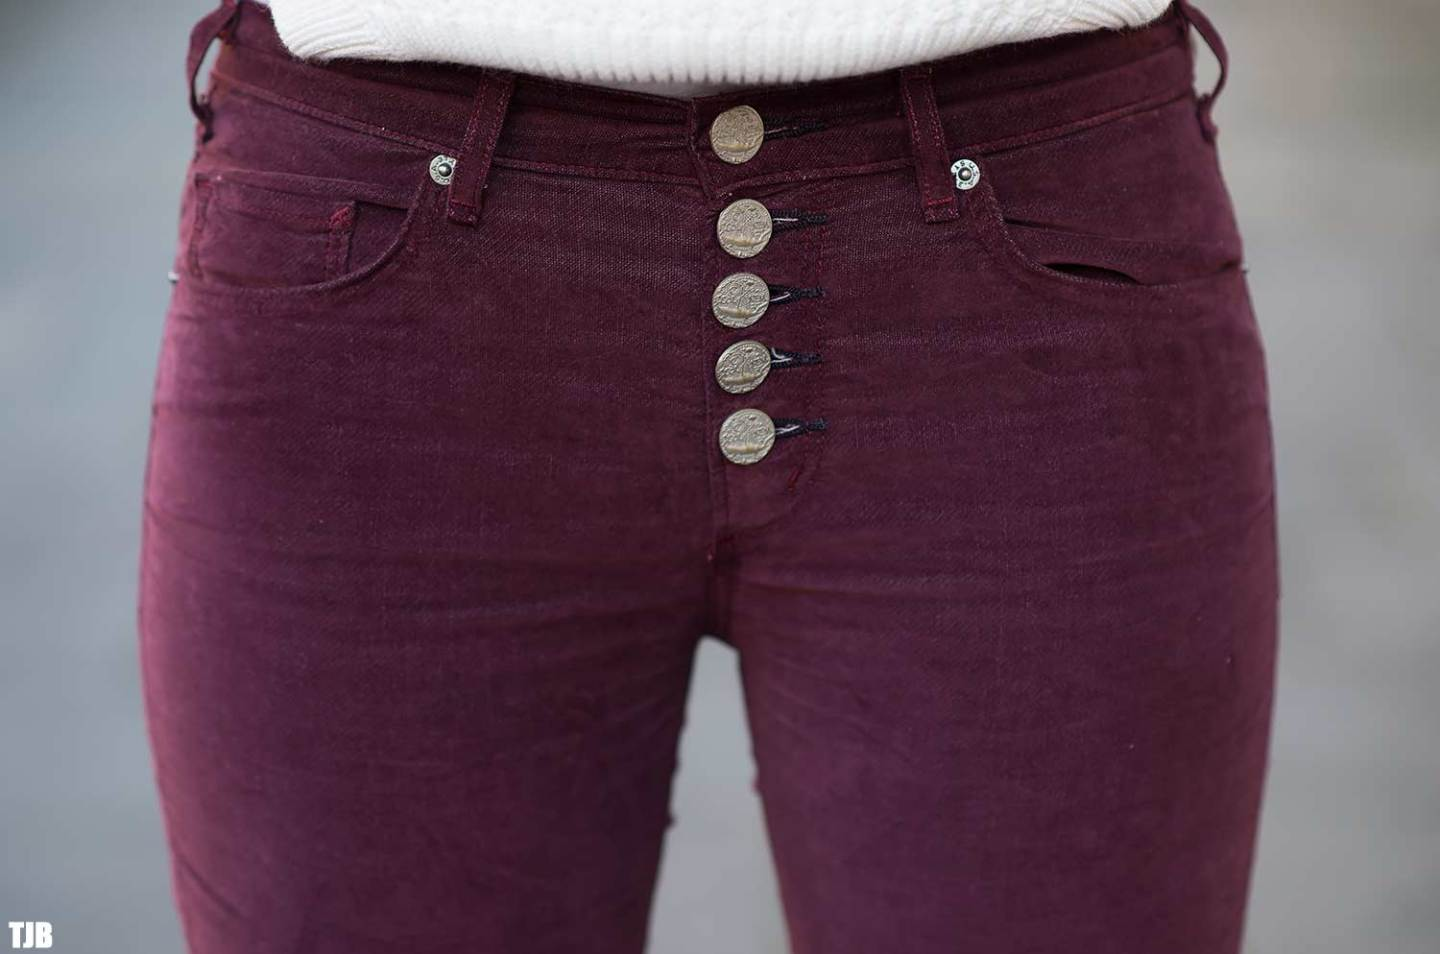 mcguire-denim-newton-exposed-button-skinny-pants-in-pinot-review-8